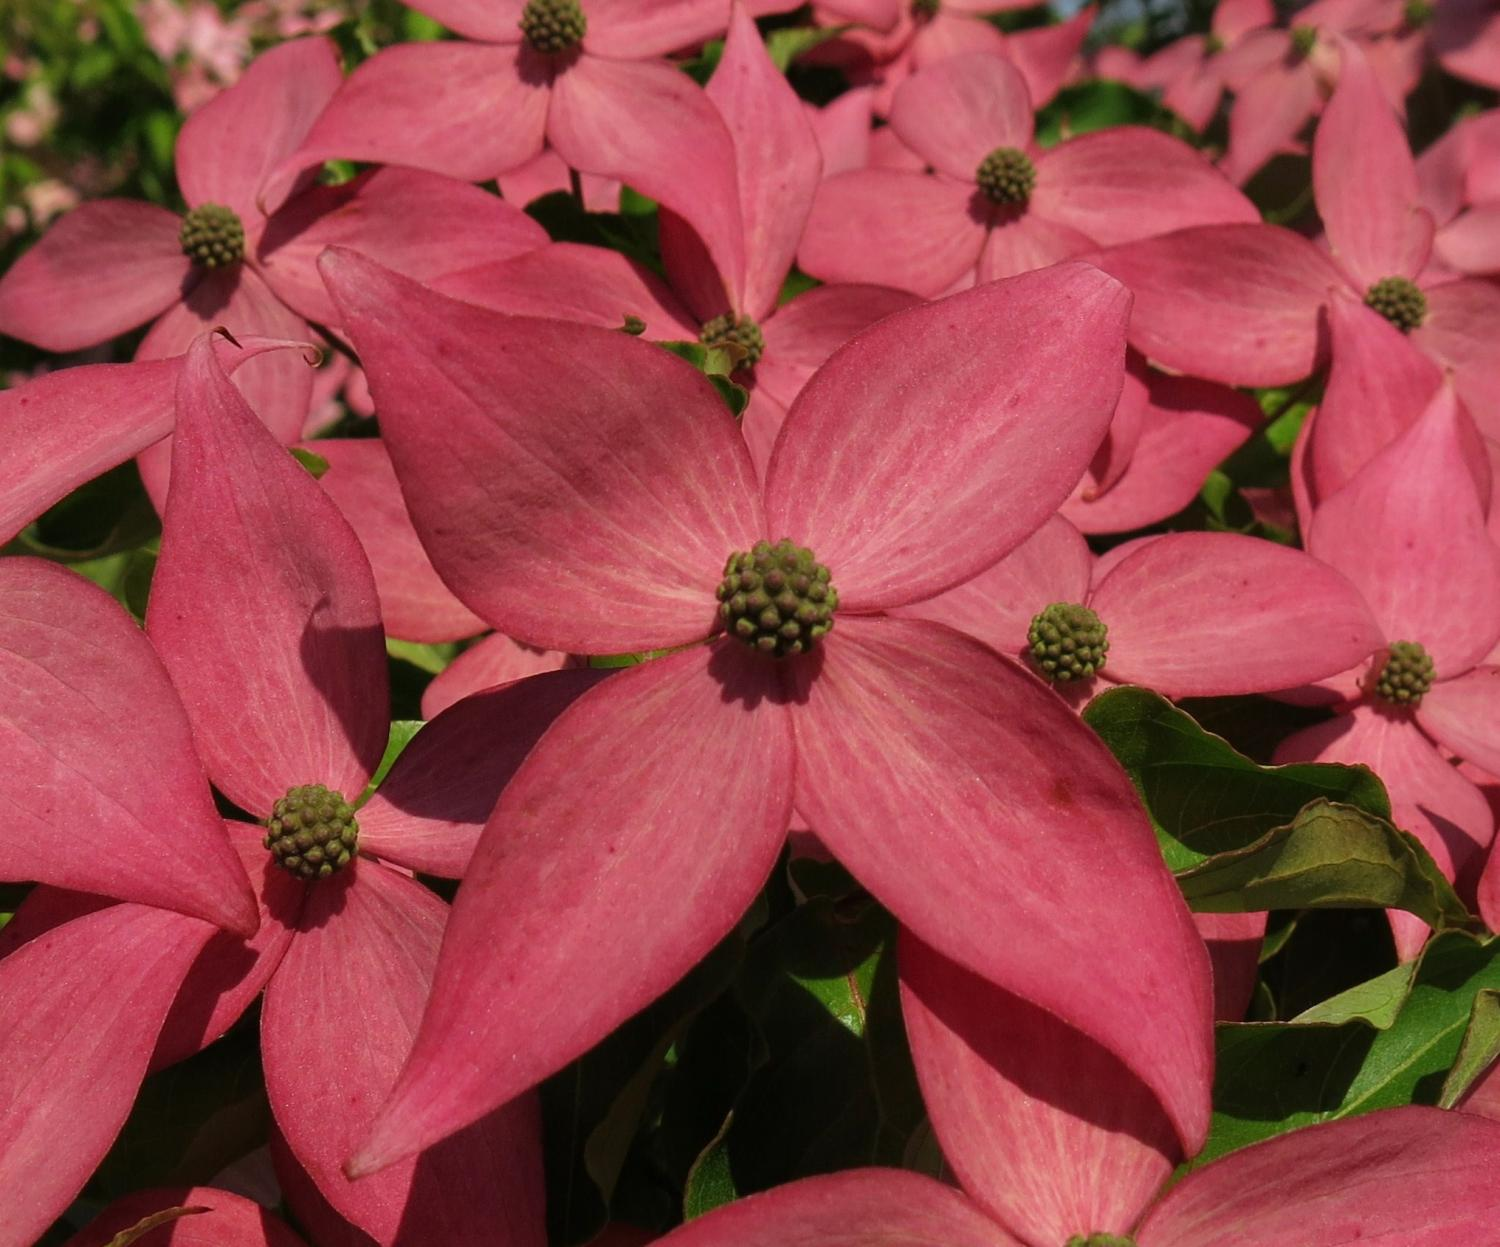 New Pink Dogwood Adds Breakthrough Color To The Landscape